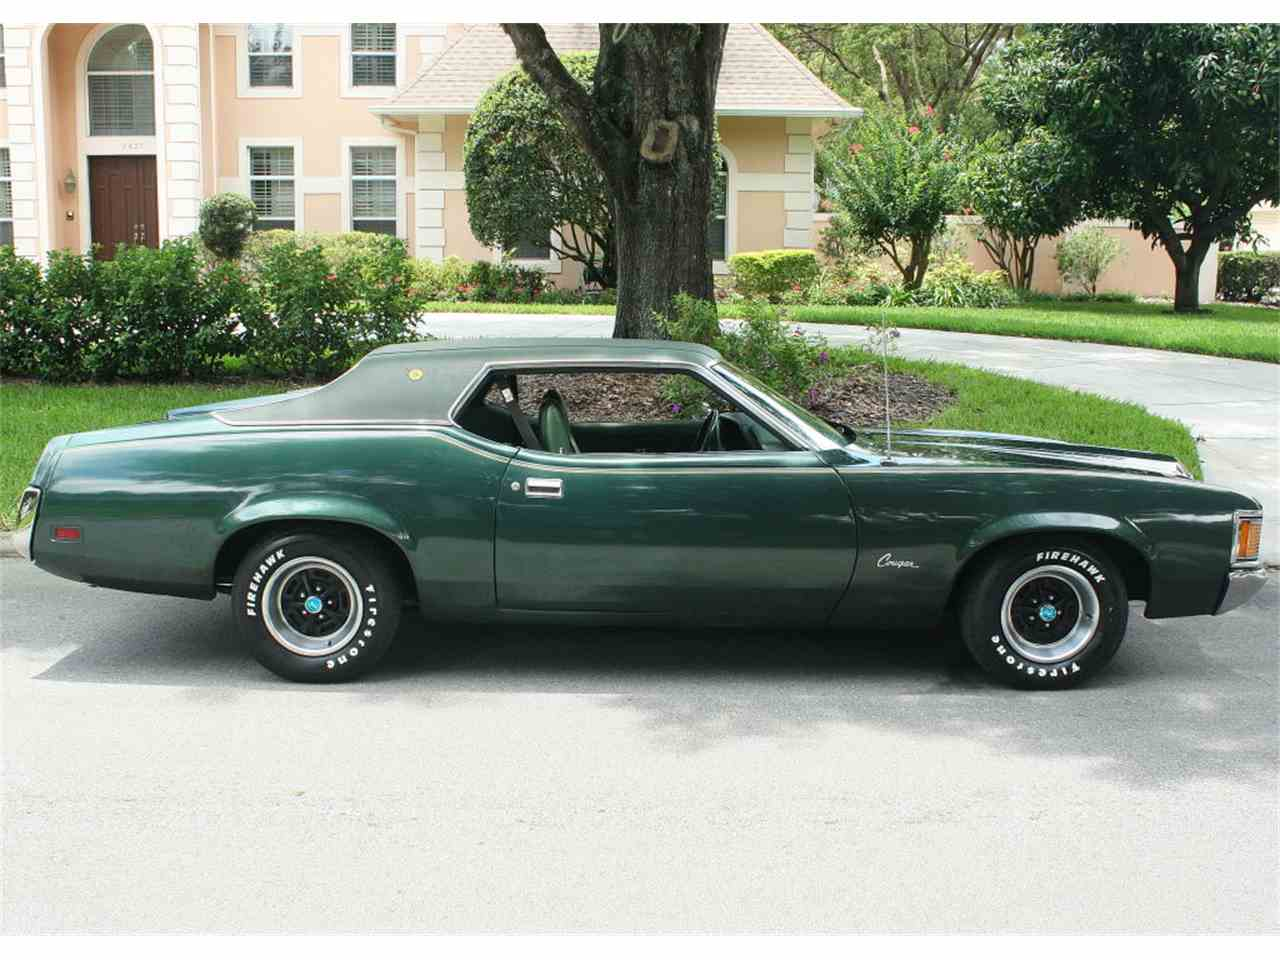 Muscle Cars Under 5k >> 1971 Mercury Cougar for Sale | ClassicCars.com | CC-995303